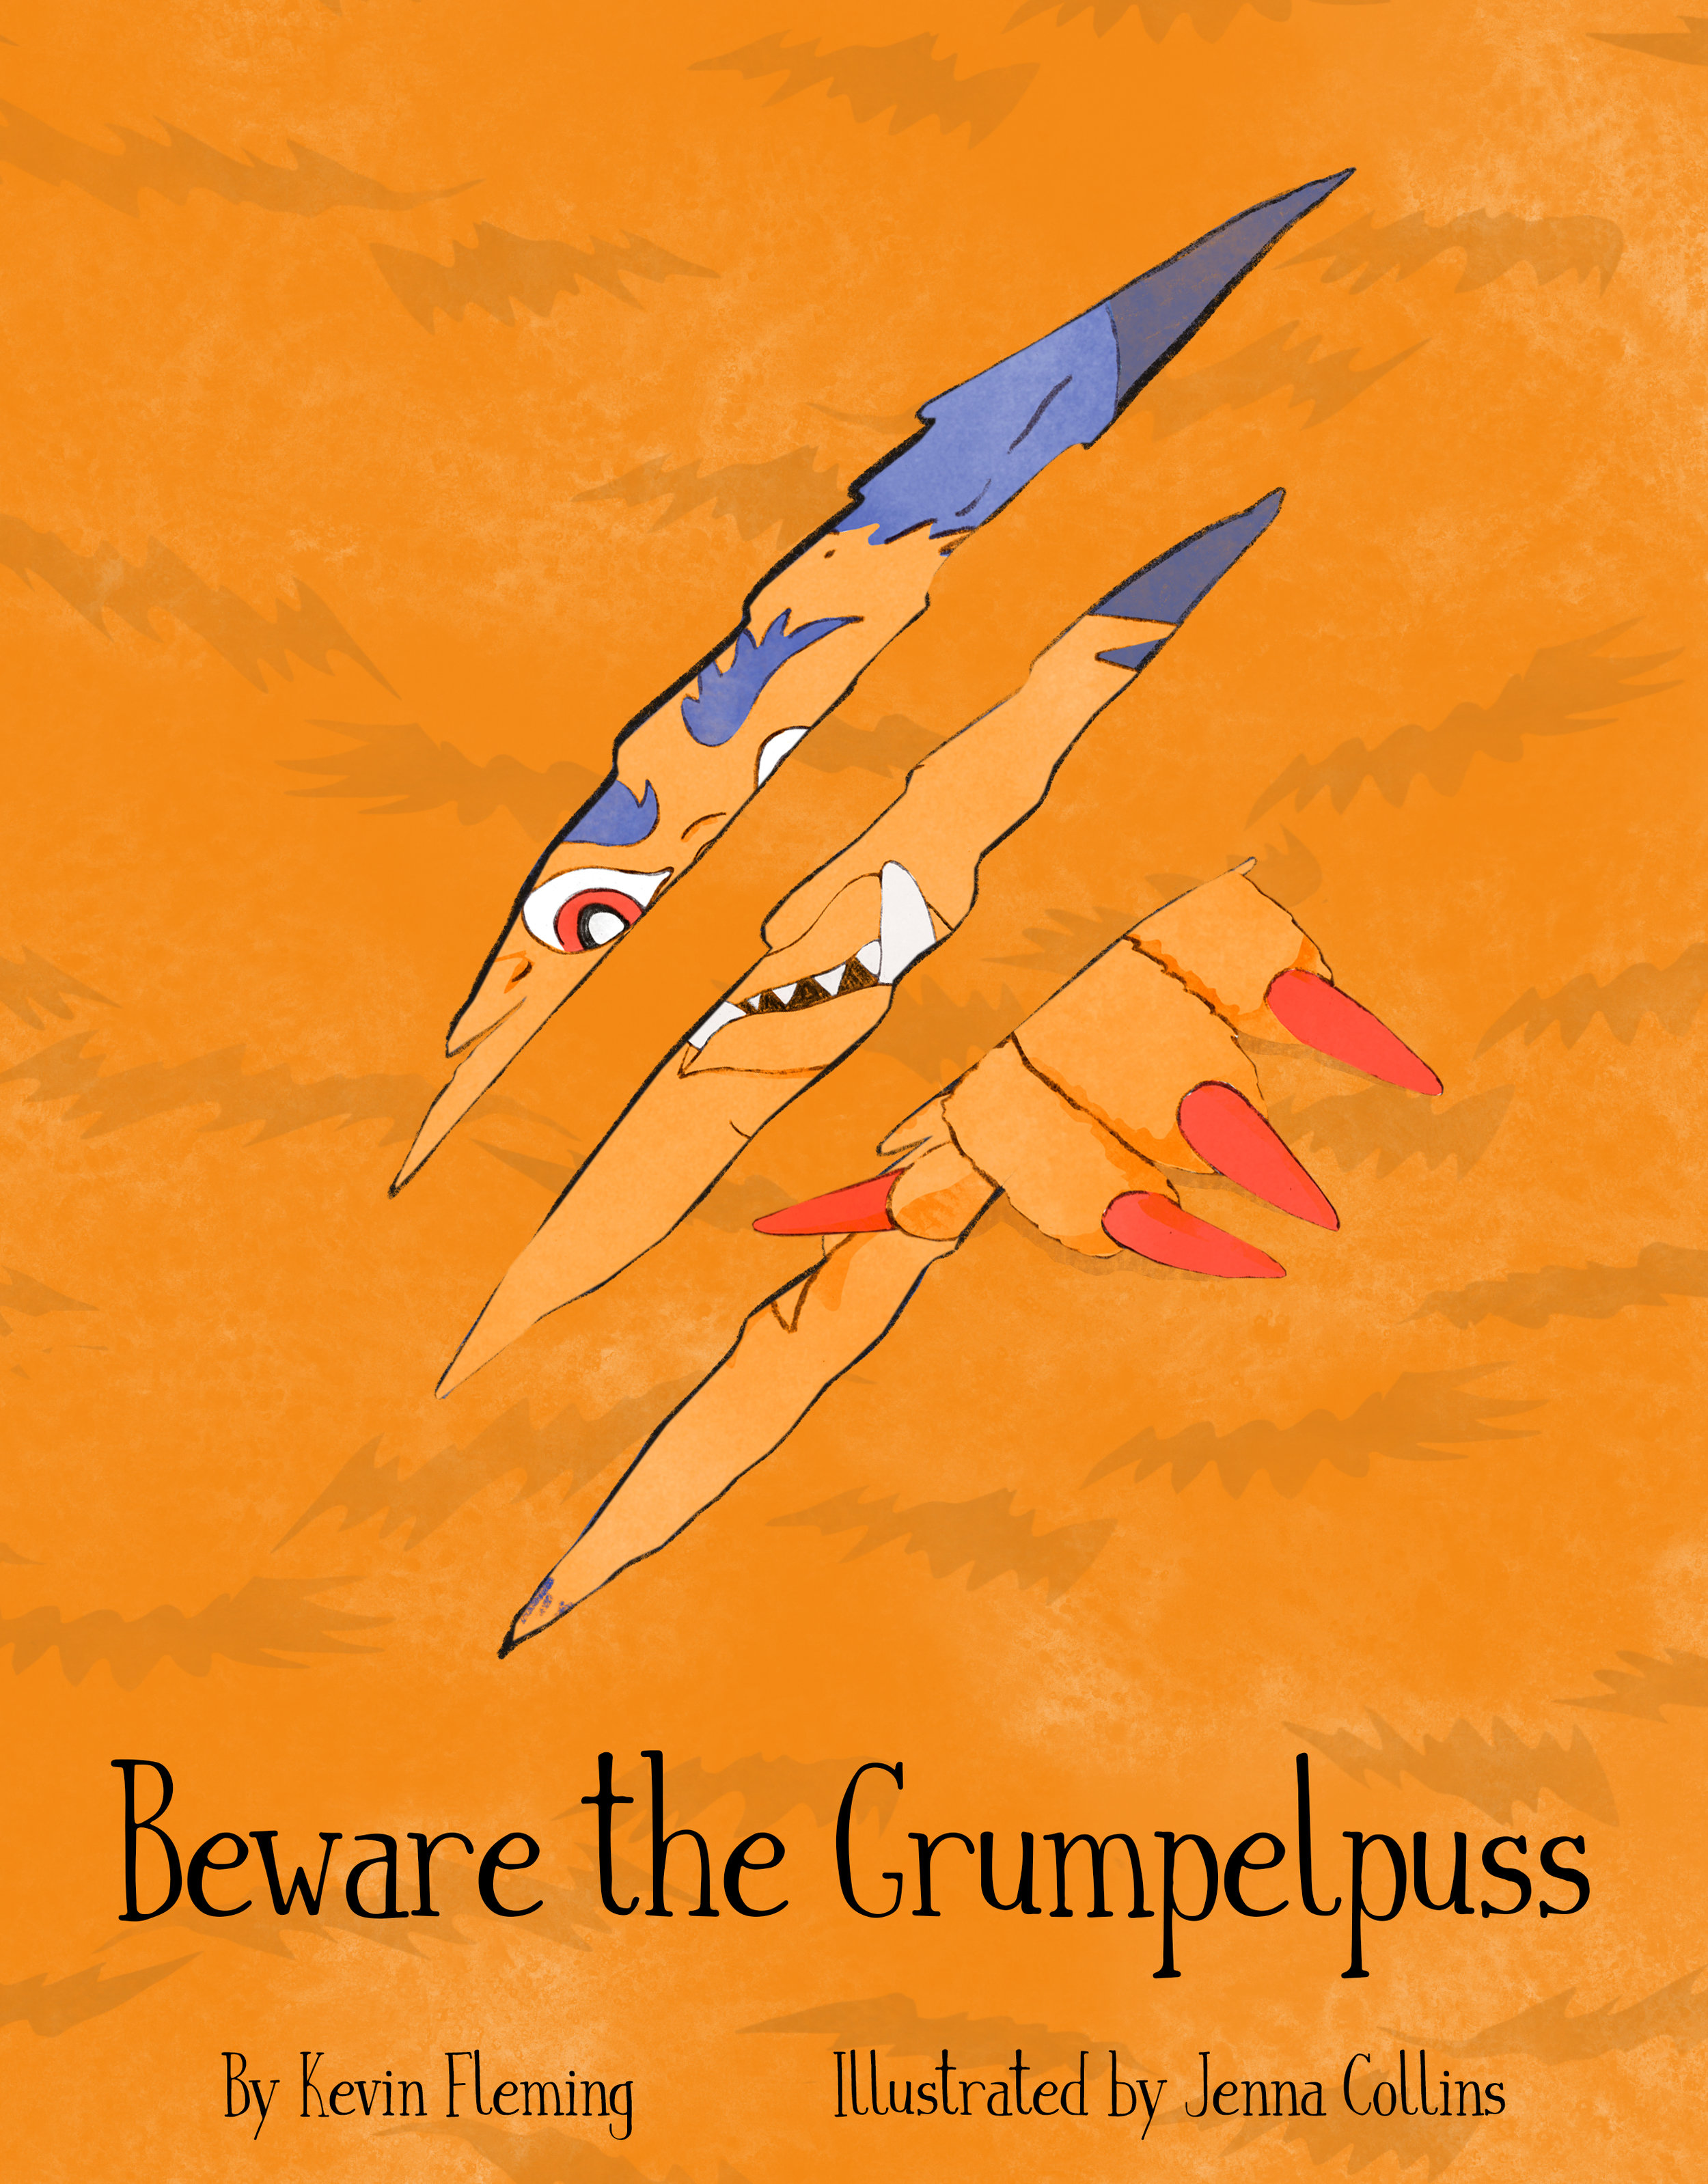 New Book Released - The Grumpelpuss is Loose! - Release Date: Friday, October 4th, 2019Beware the Grumpelpuss is the story of a boy who discovers the frightening and mythical beast, the Grumpelpuss, in a most unexpected place! In this beautifully illustrated tale of self-realization and personal heroism, comedic scenarios and rhyming verse take readers through a series of behavioral missteps that lead to the discovery of the feared creature. The methods of defeating the Grumpelpuss are revealed, and readers are offered the choice to heroically conquer their own personal Grumpelpuss as well:There's only one way to set a Grumpelpuss free: that's to unlock his cage, and YOU hold the key!